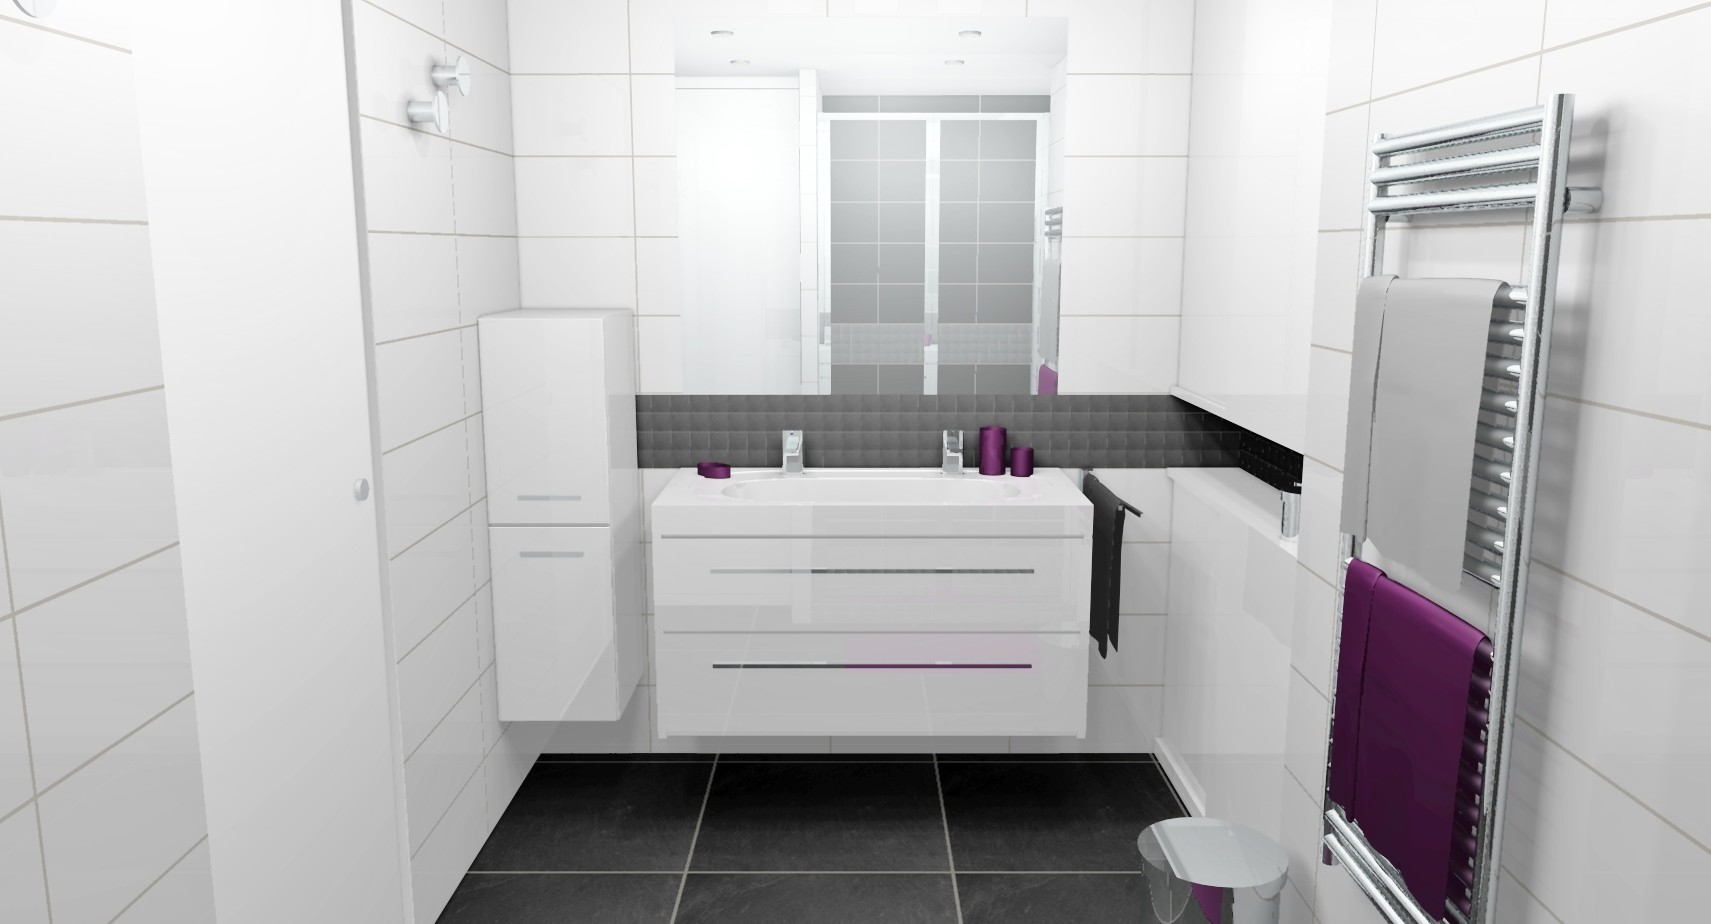 Amenagement salle de bain 7m2 fashion designs for Amenagement salle de bain 7m2